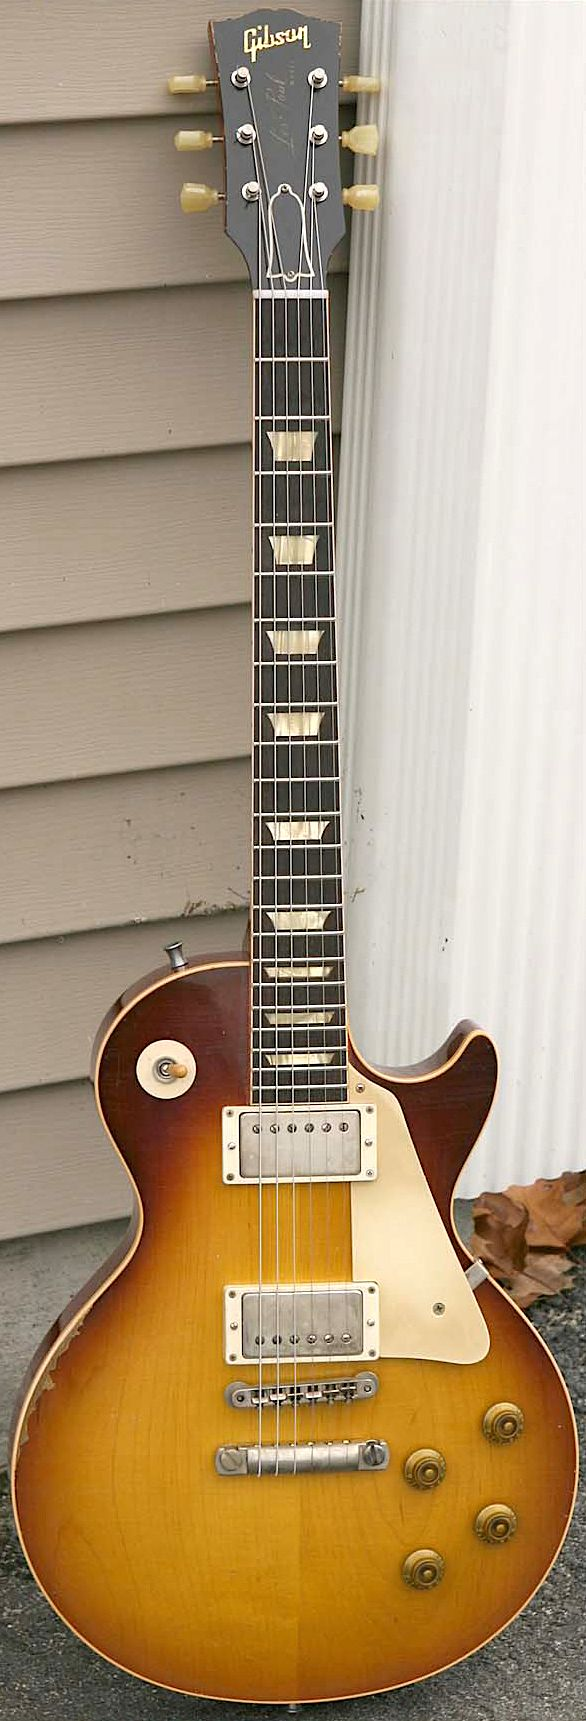 2010 Gibson 1957 Reissue Refinished/Aged by Dave Johnson to a Pearly Gates Plaintop